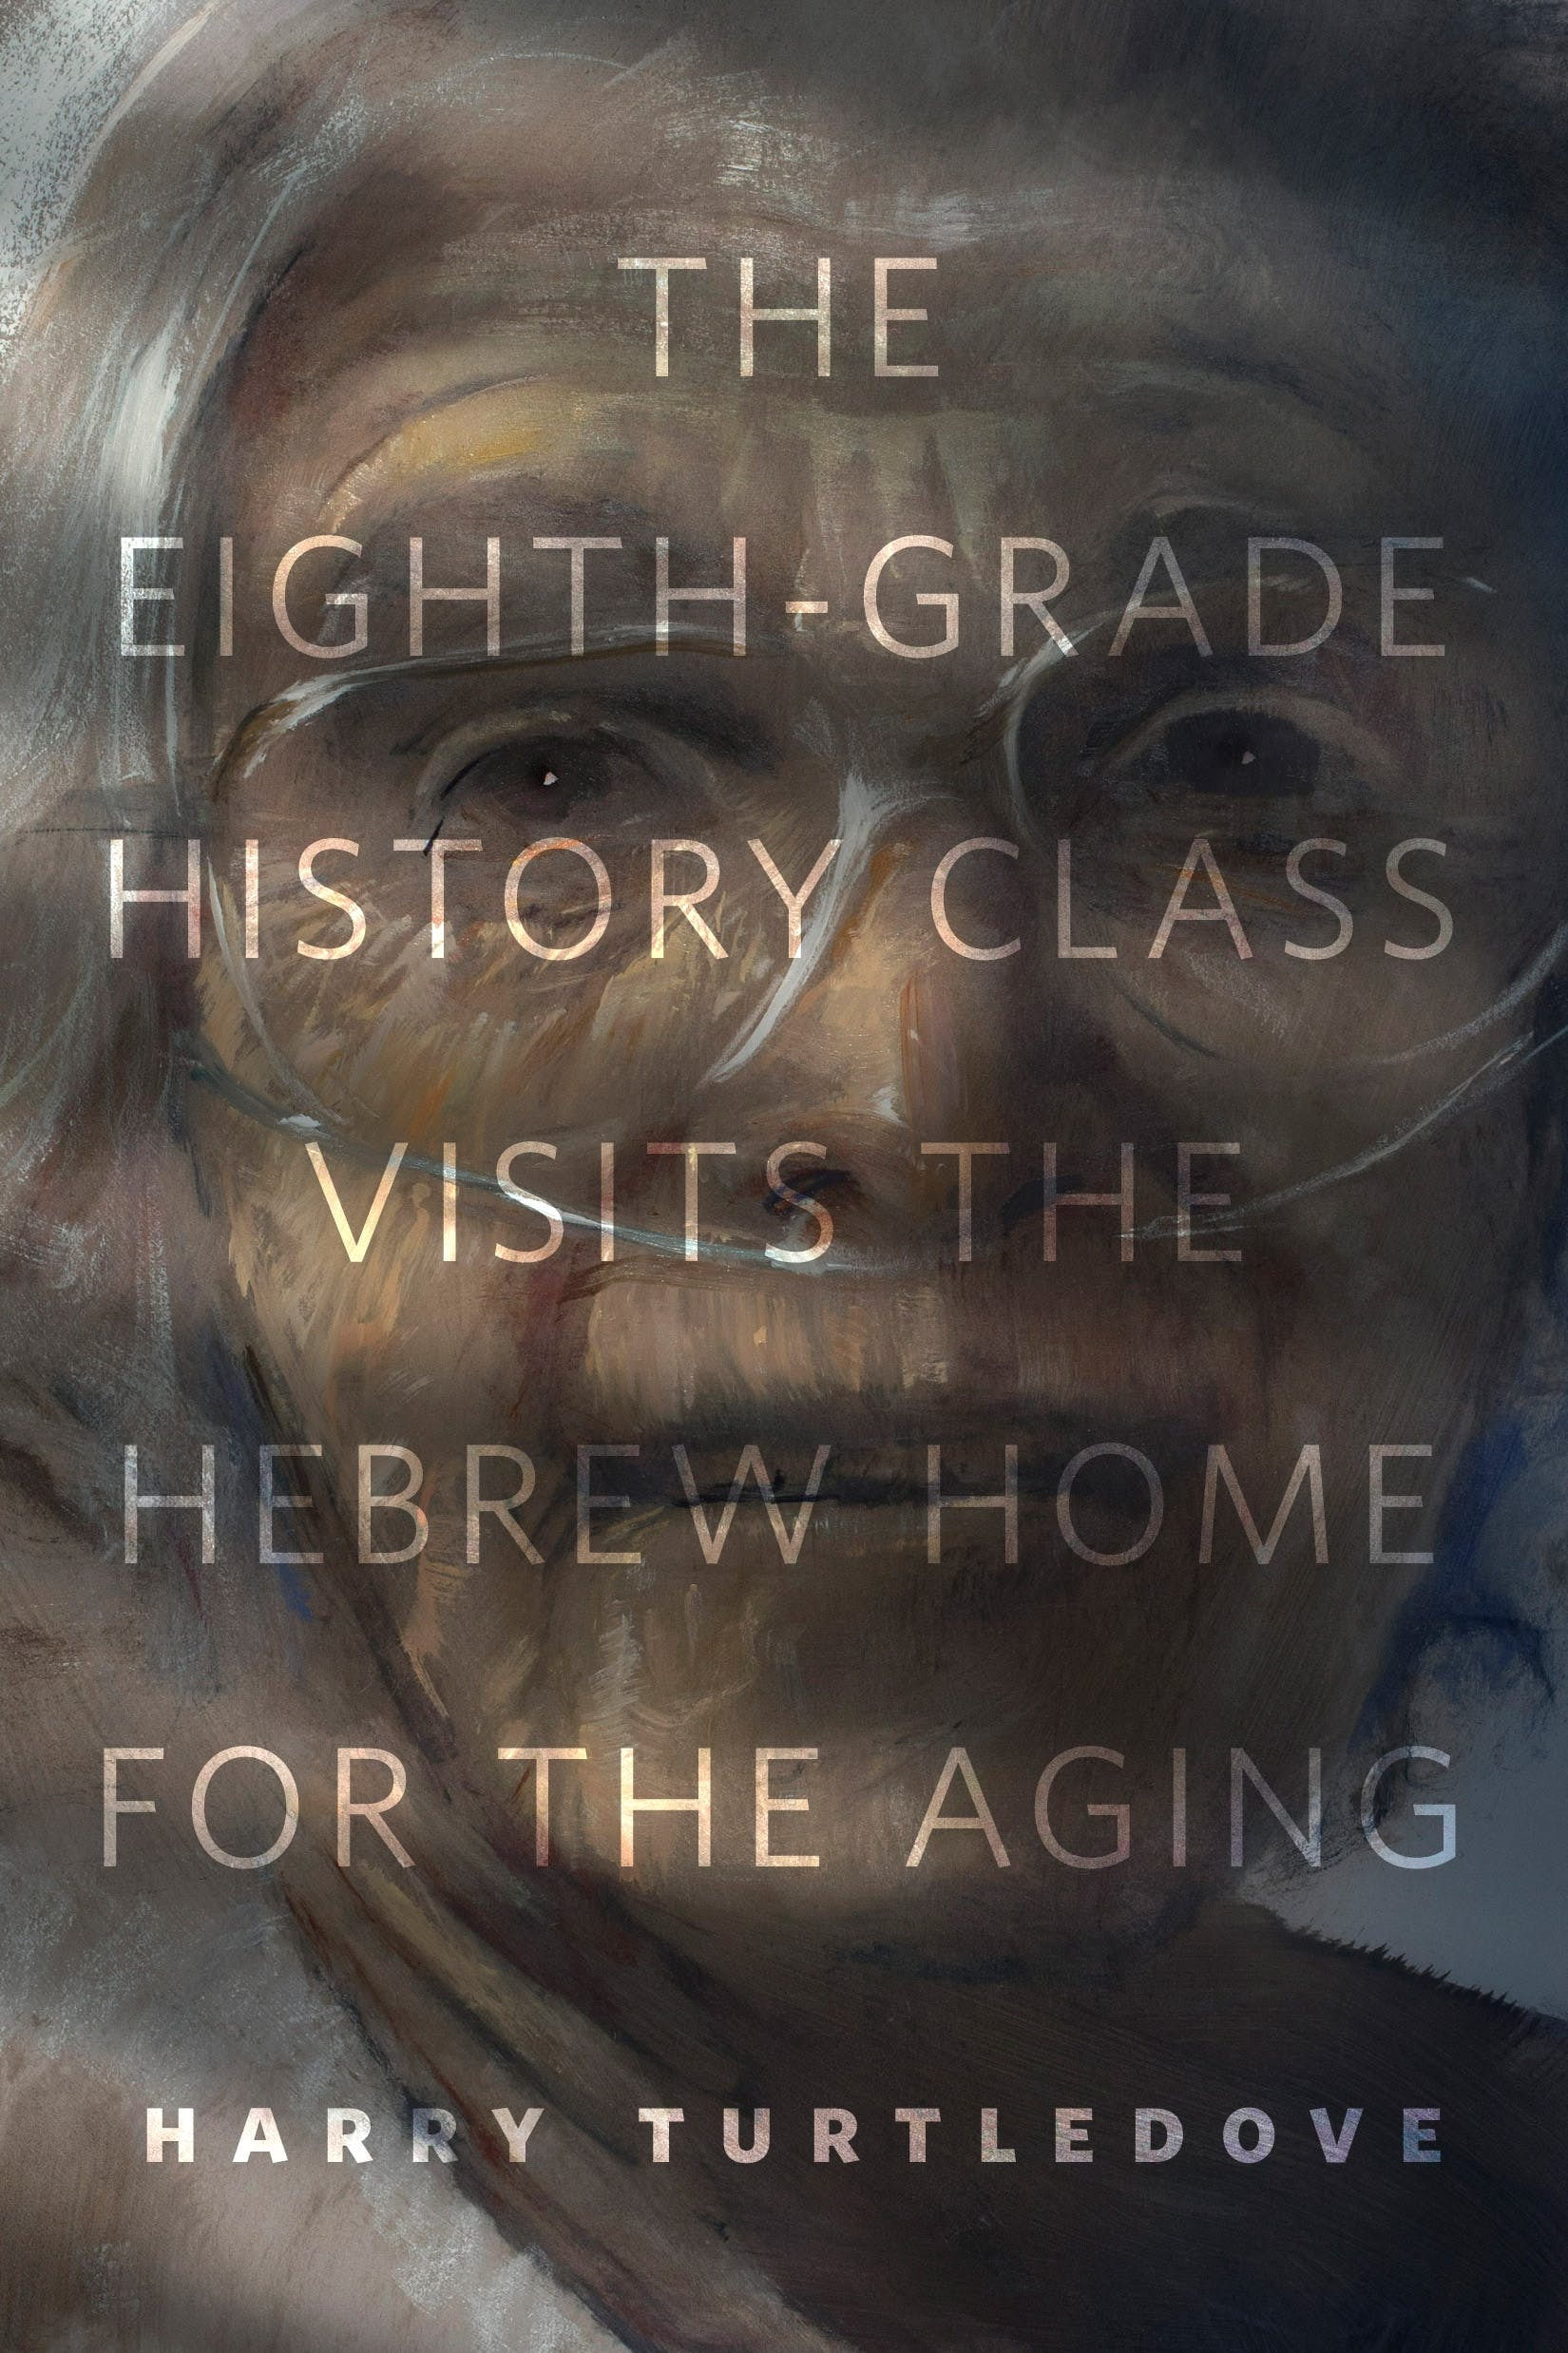 Image of The Eighth-Grade History Class Visits the Hebrew Home for the Aging